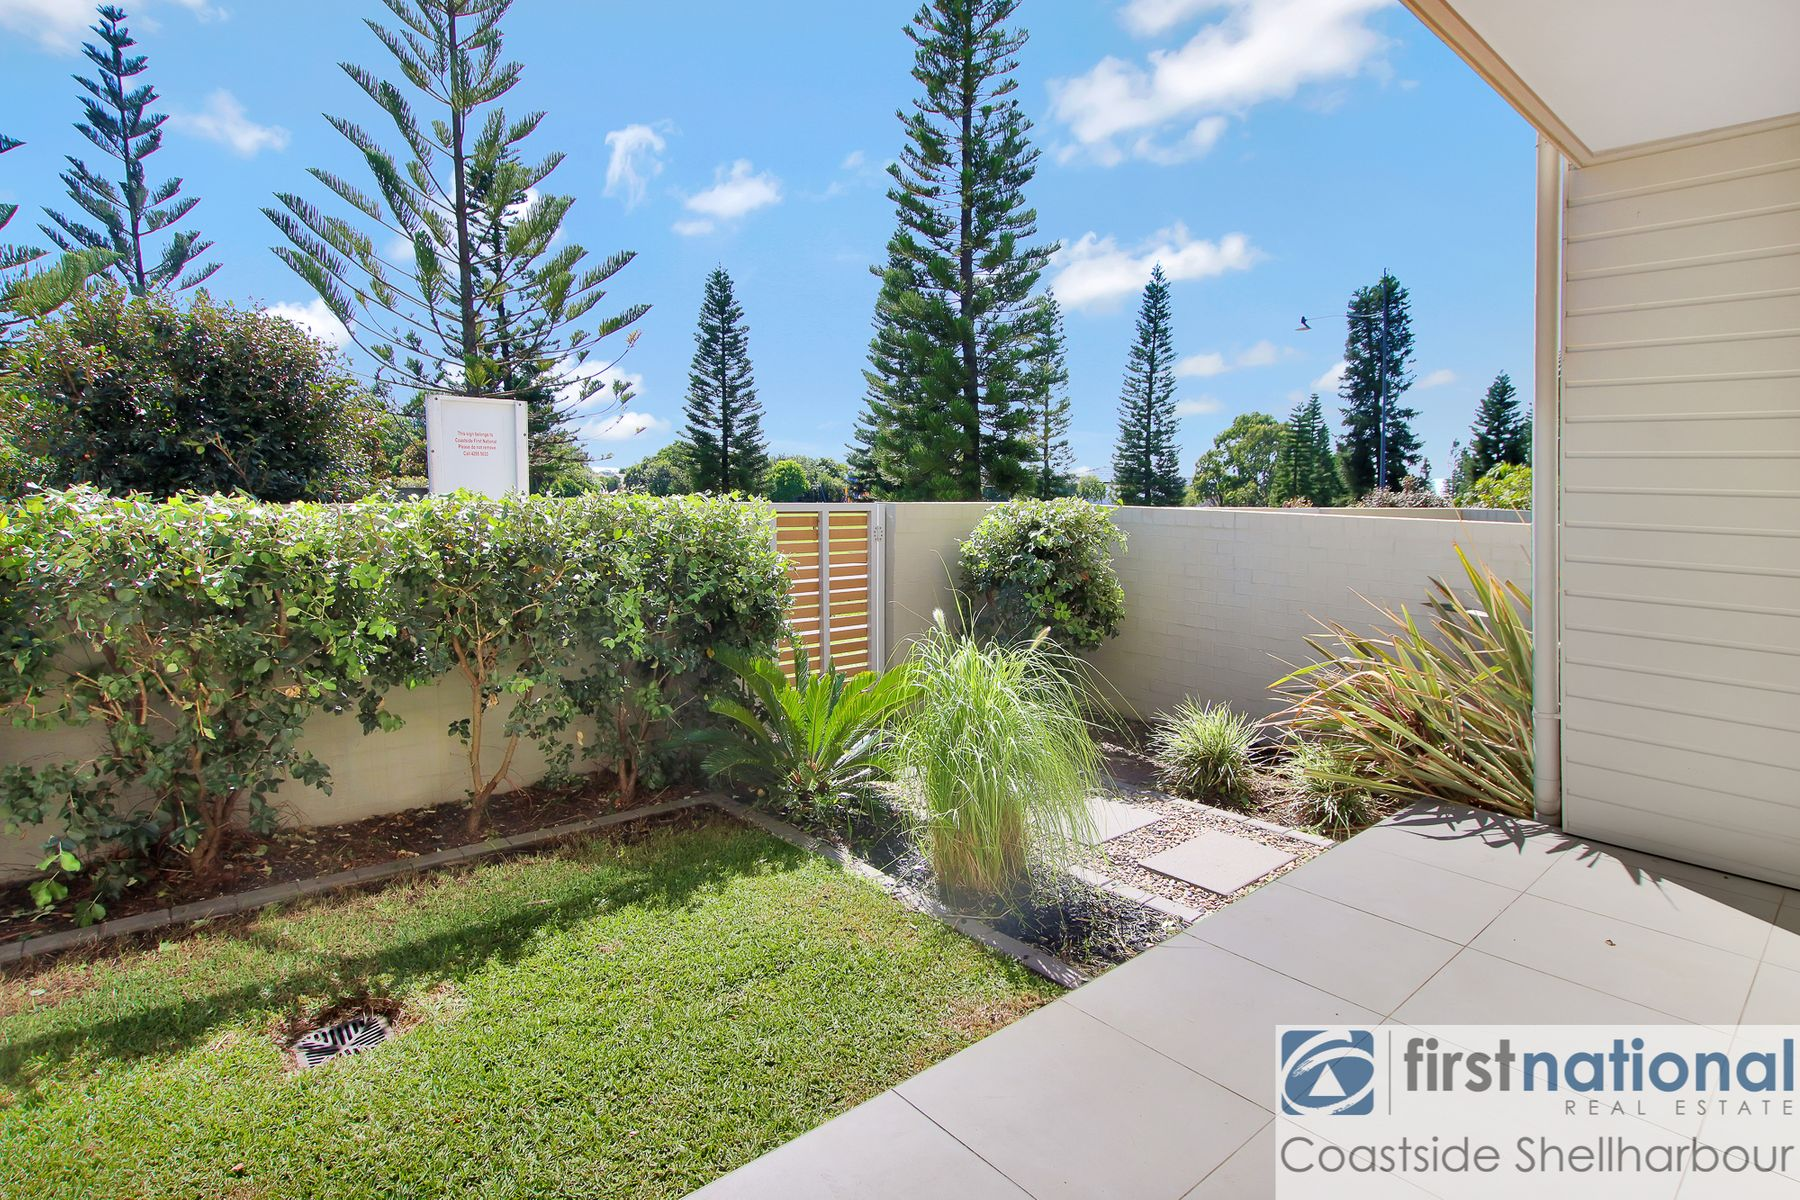 4 Cove Boulevard, Shell Cove, NSW 2529